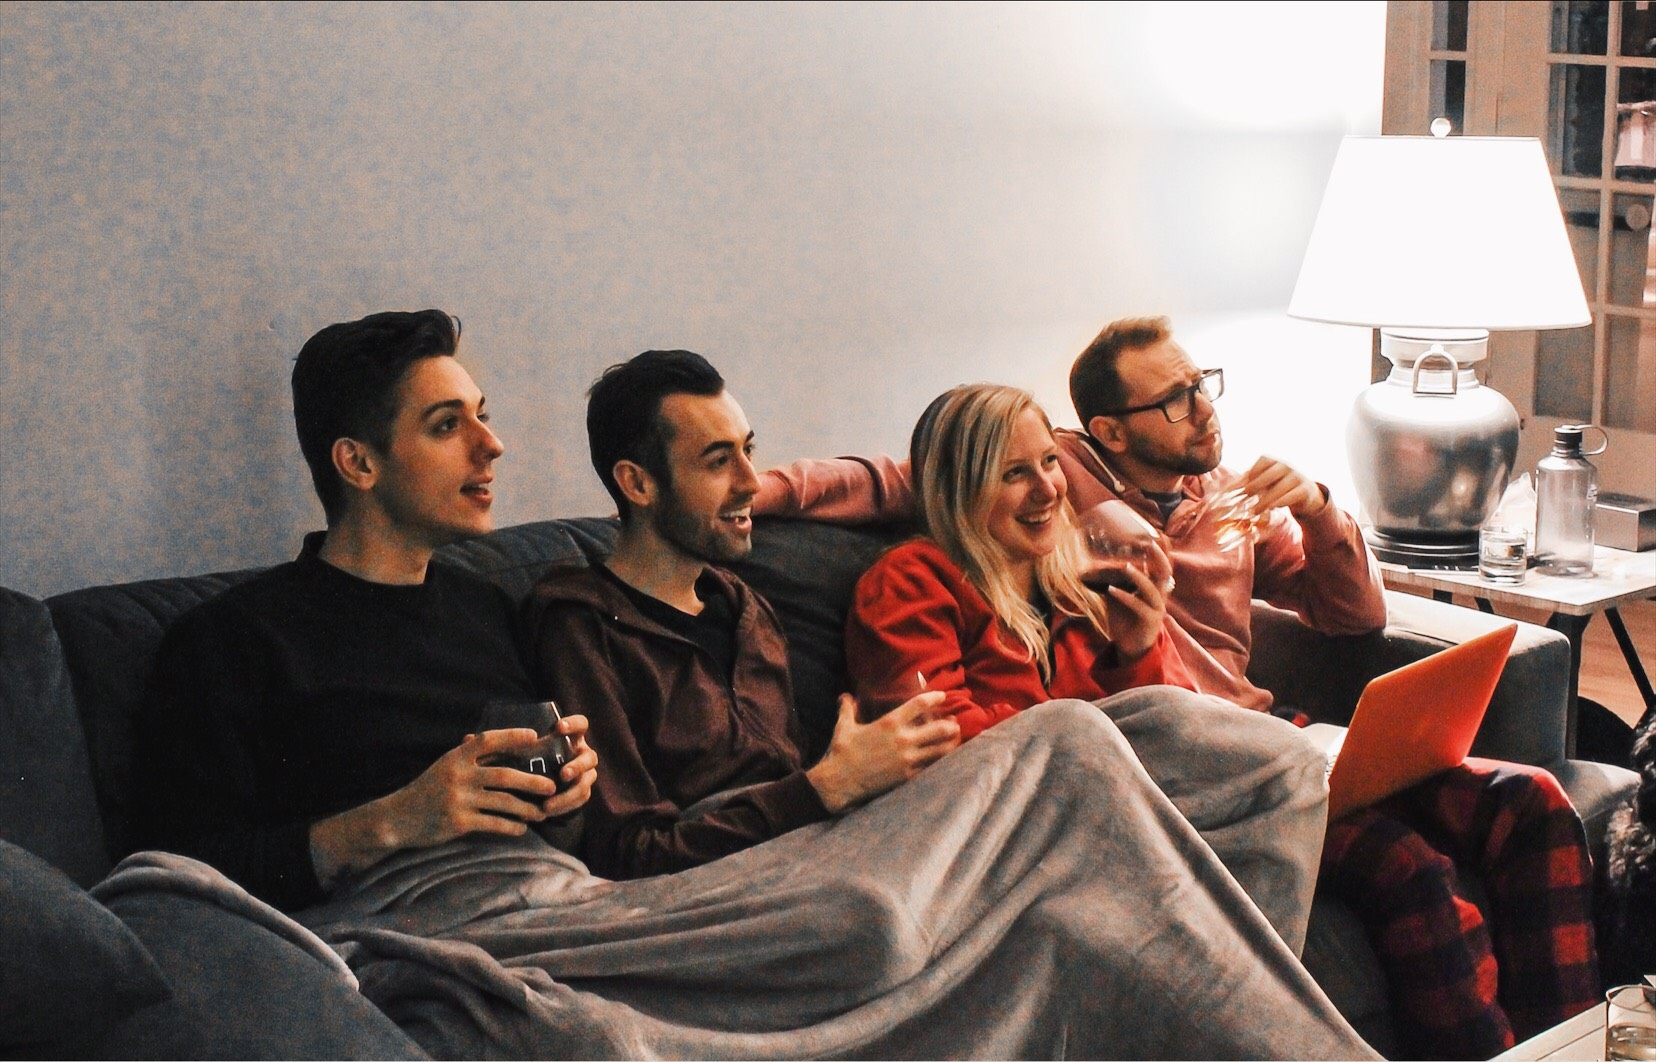 alex and mike's group of friends on couch